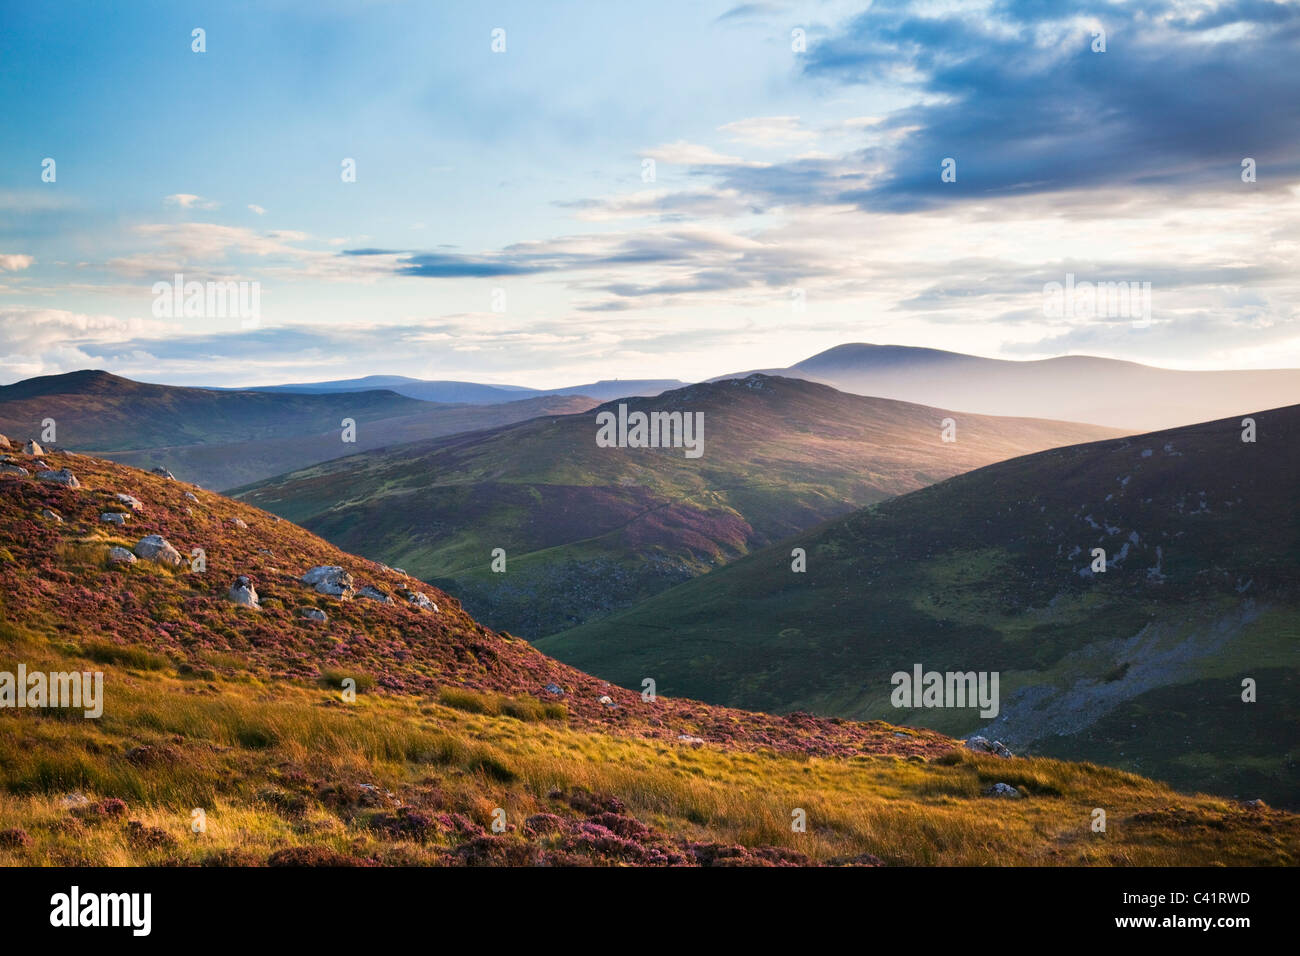 Abend in die Wicklow Mountains, County Wicklow, Irland. Stockbild